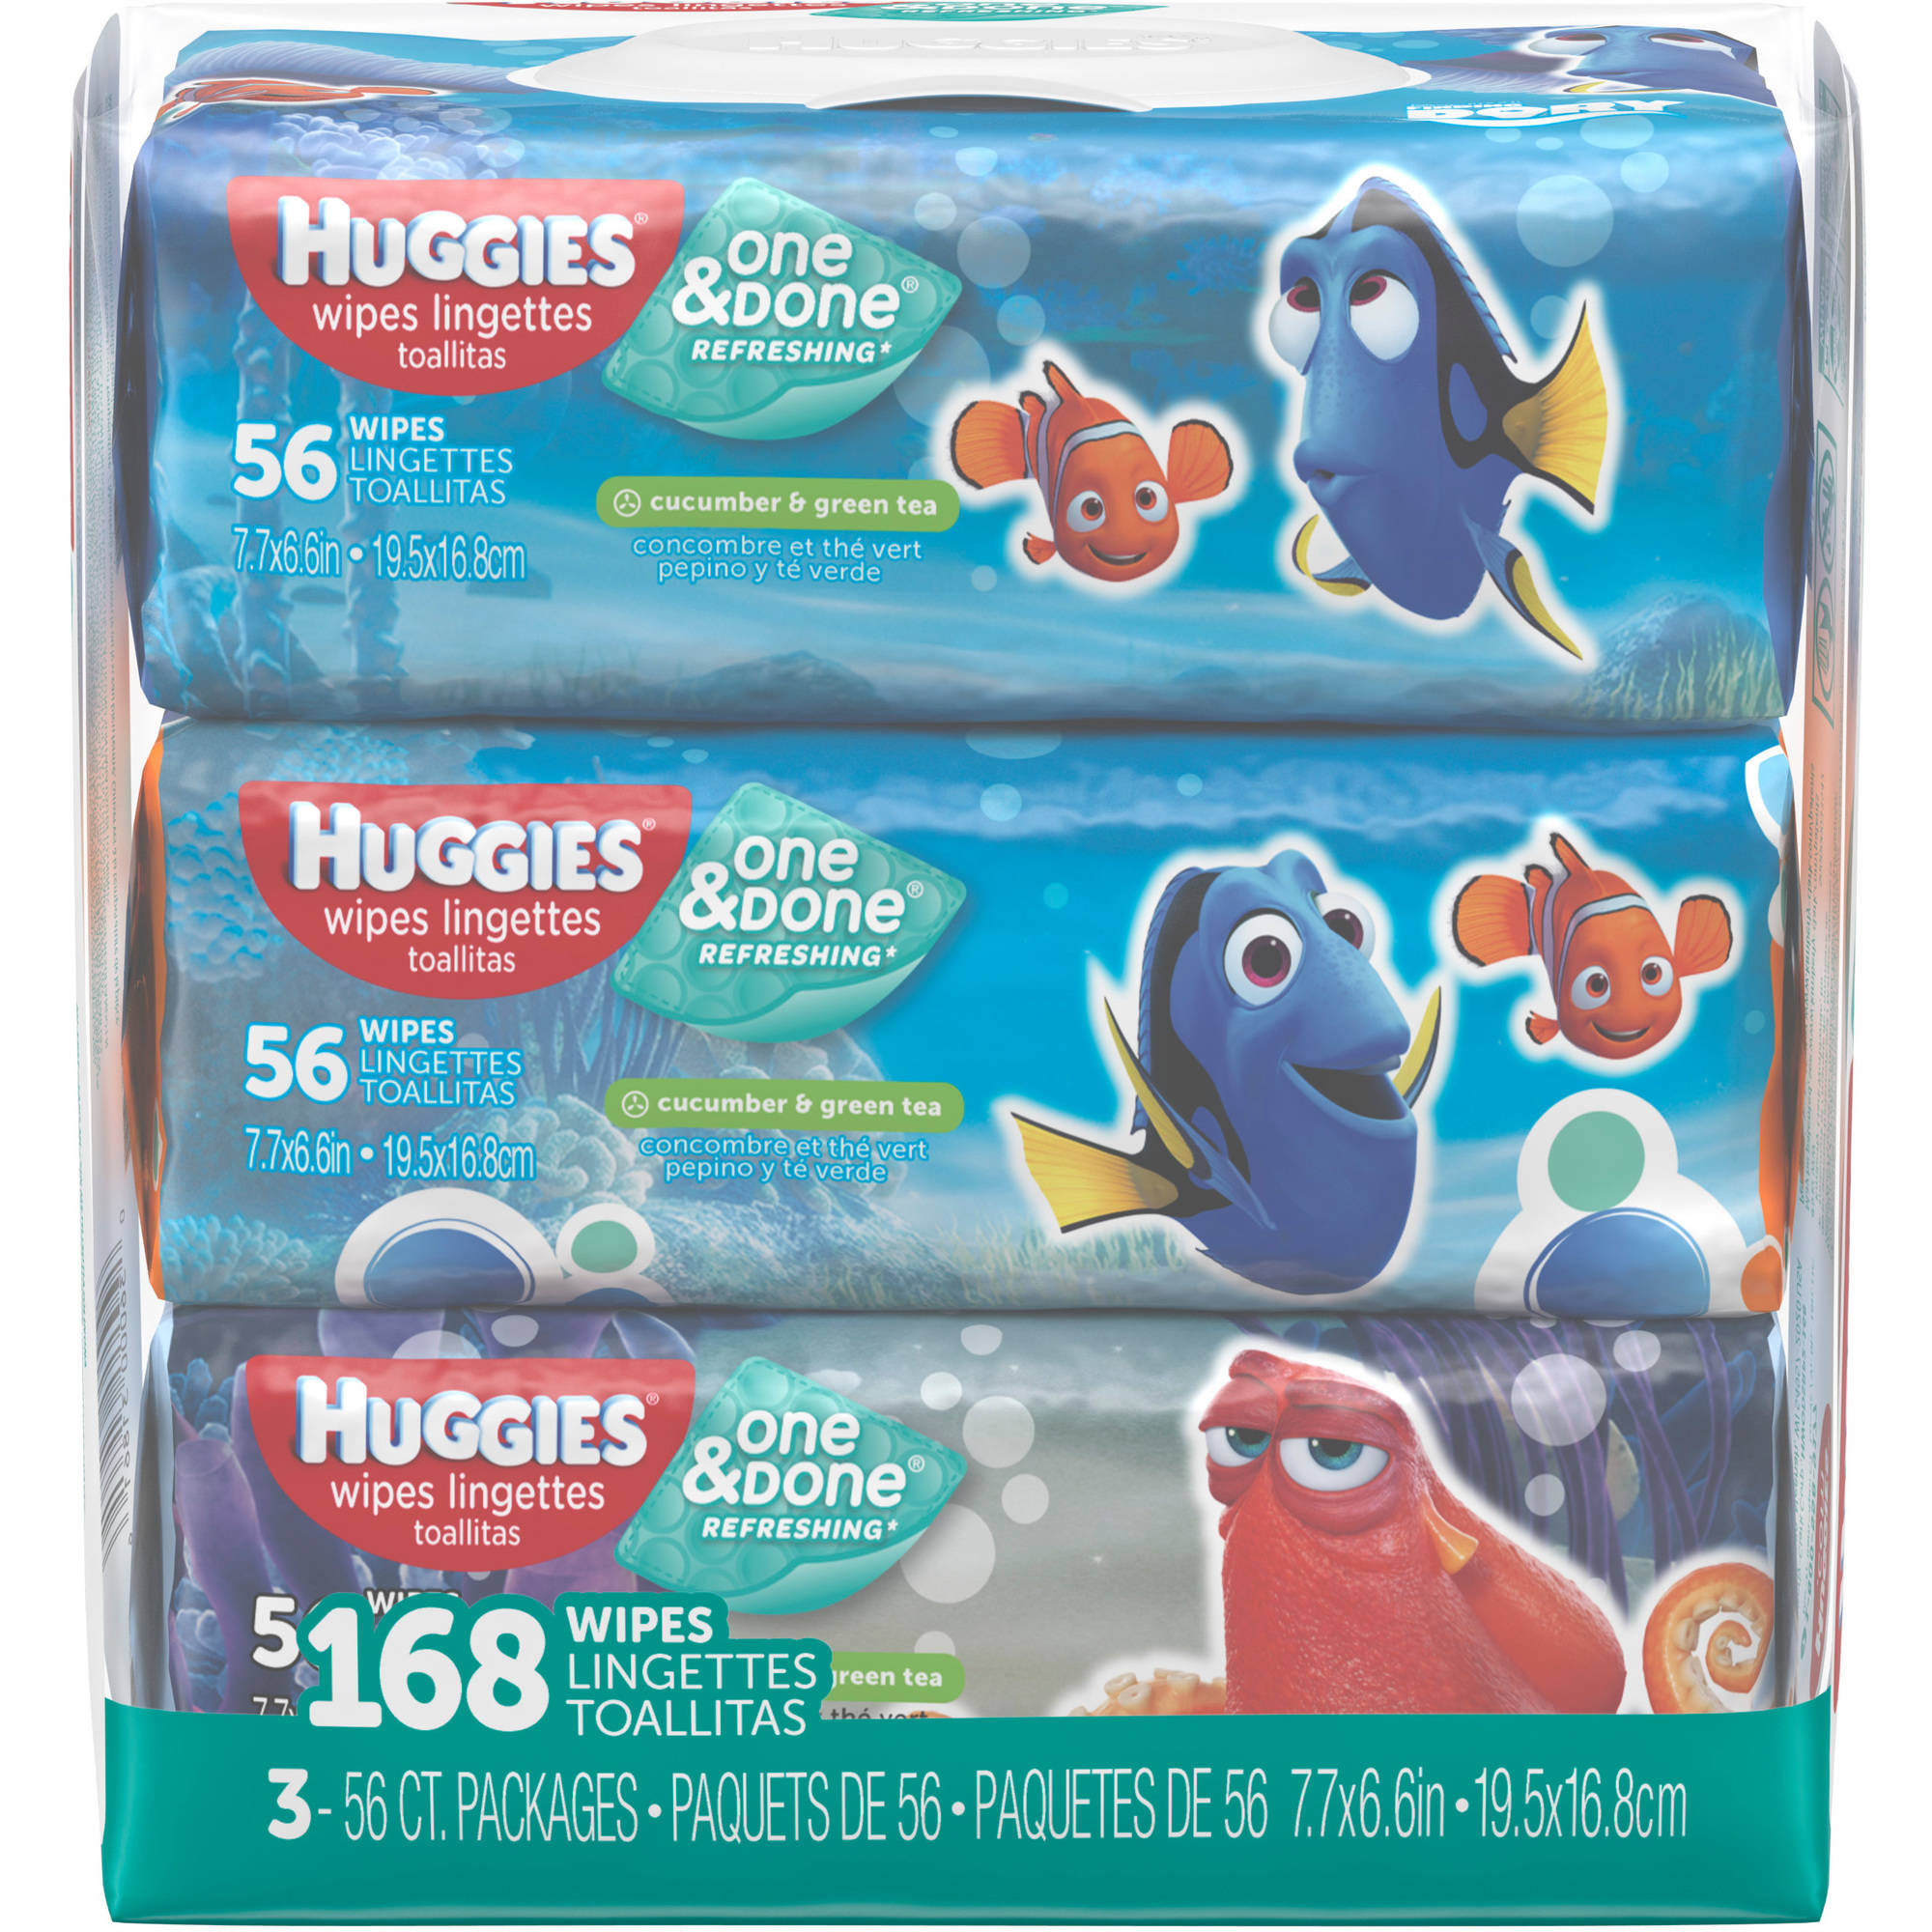 HUGGIES One & Done Refreshing Baby Wipes, 56 sheets, (Pack of 3)